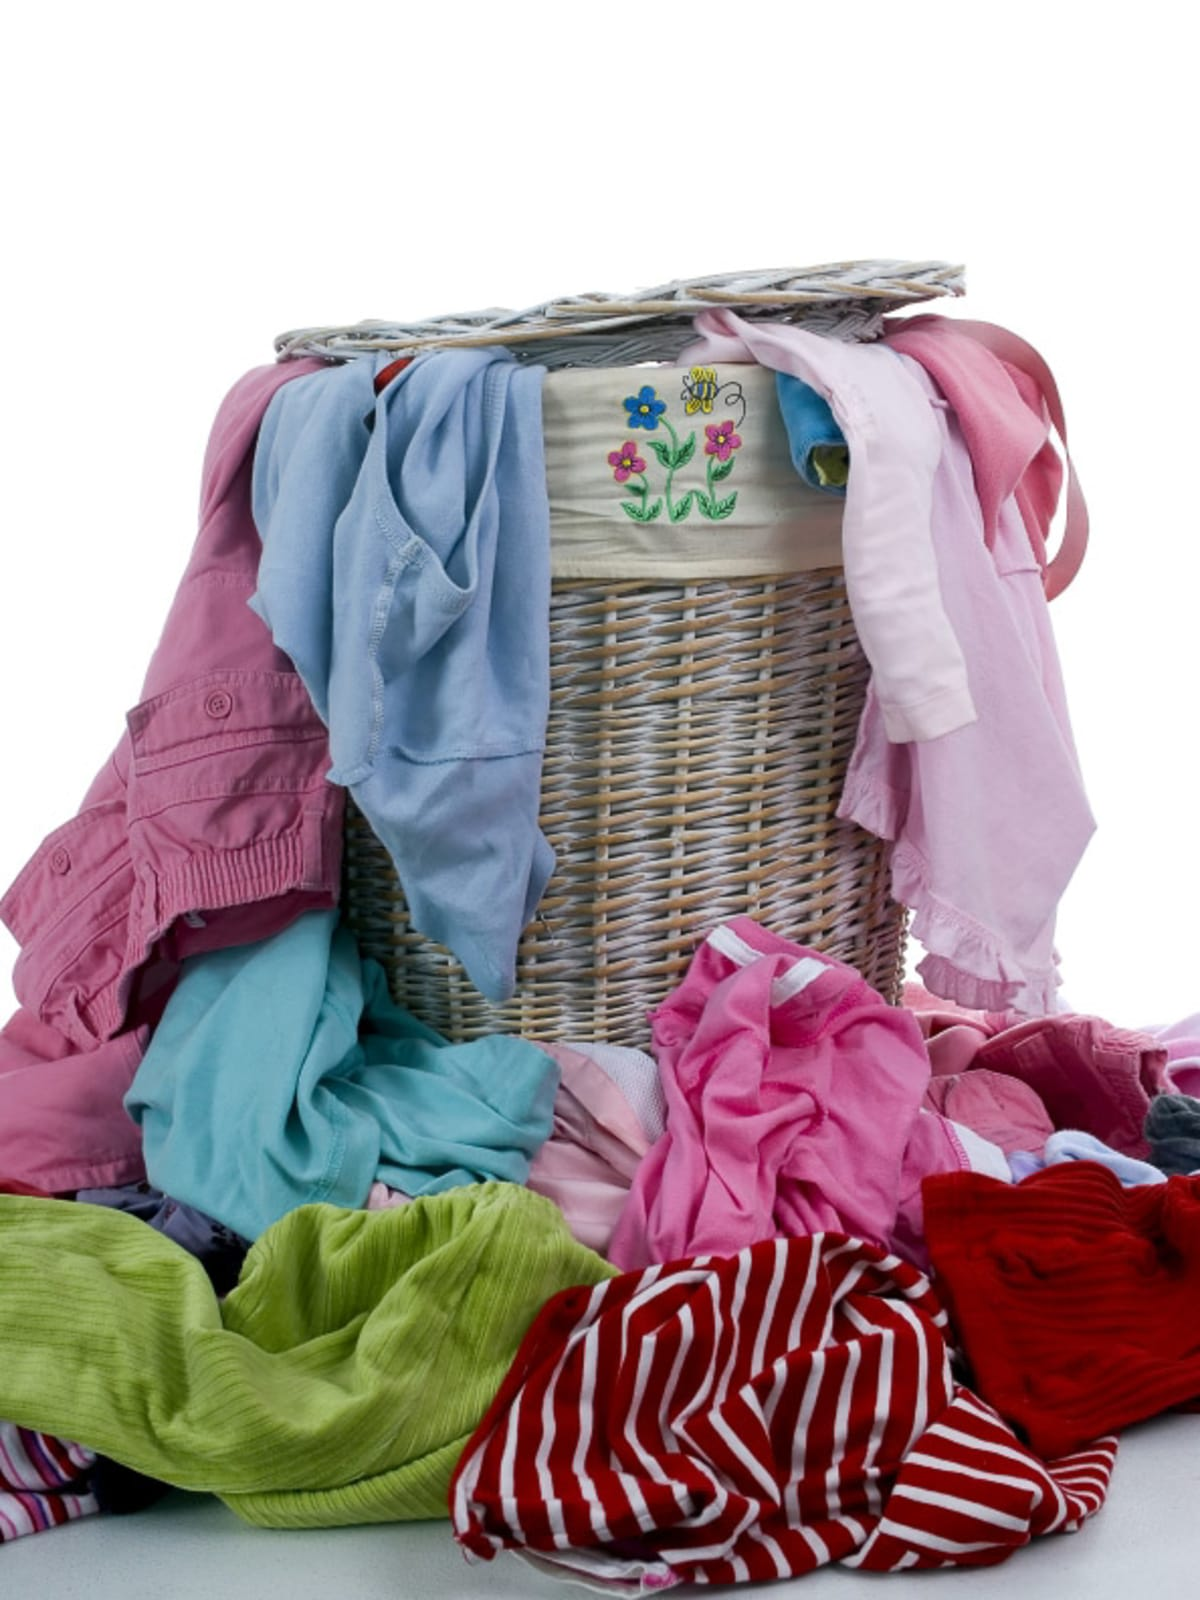 News_Caroline_laundry basket_laundry_clothes